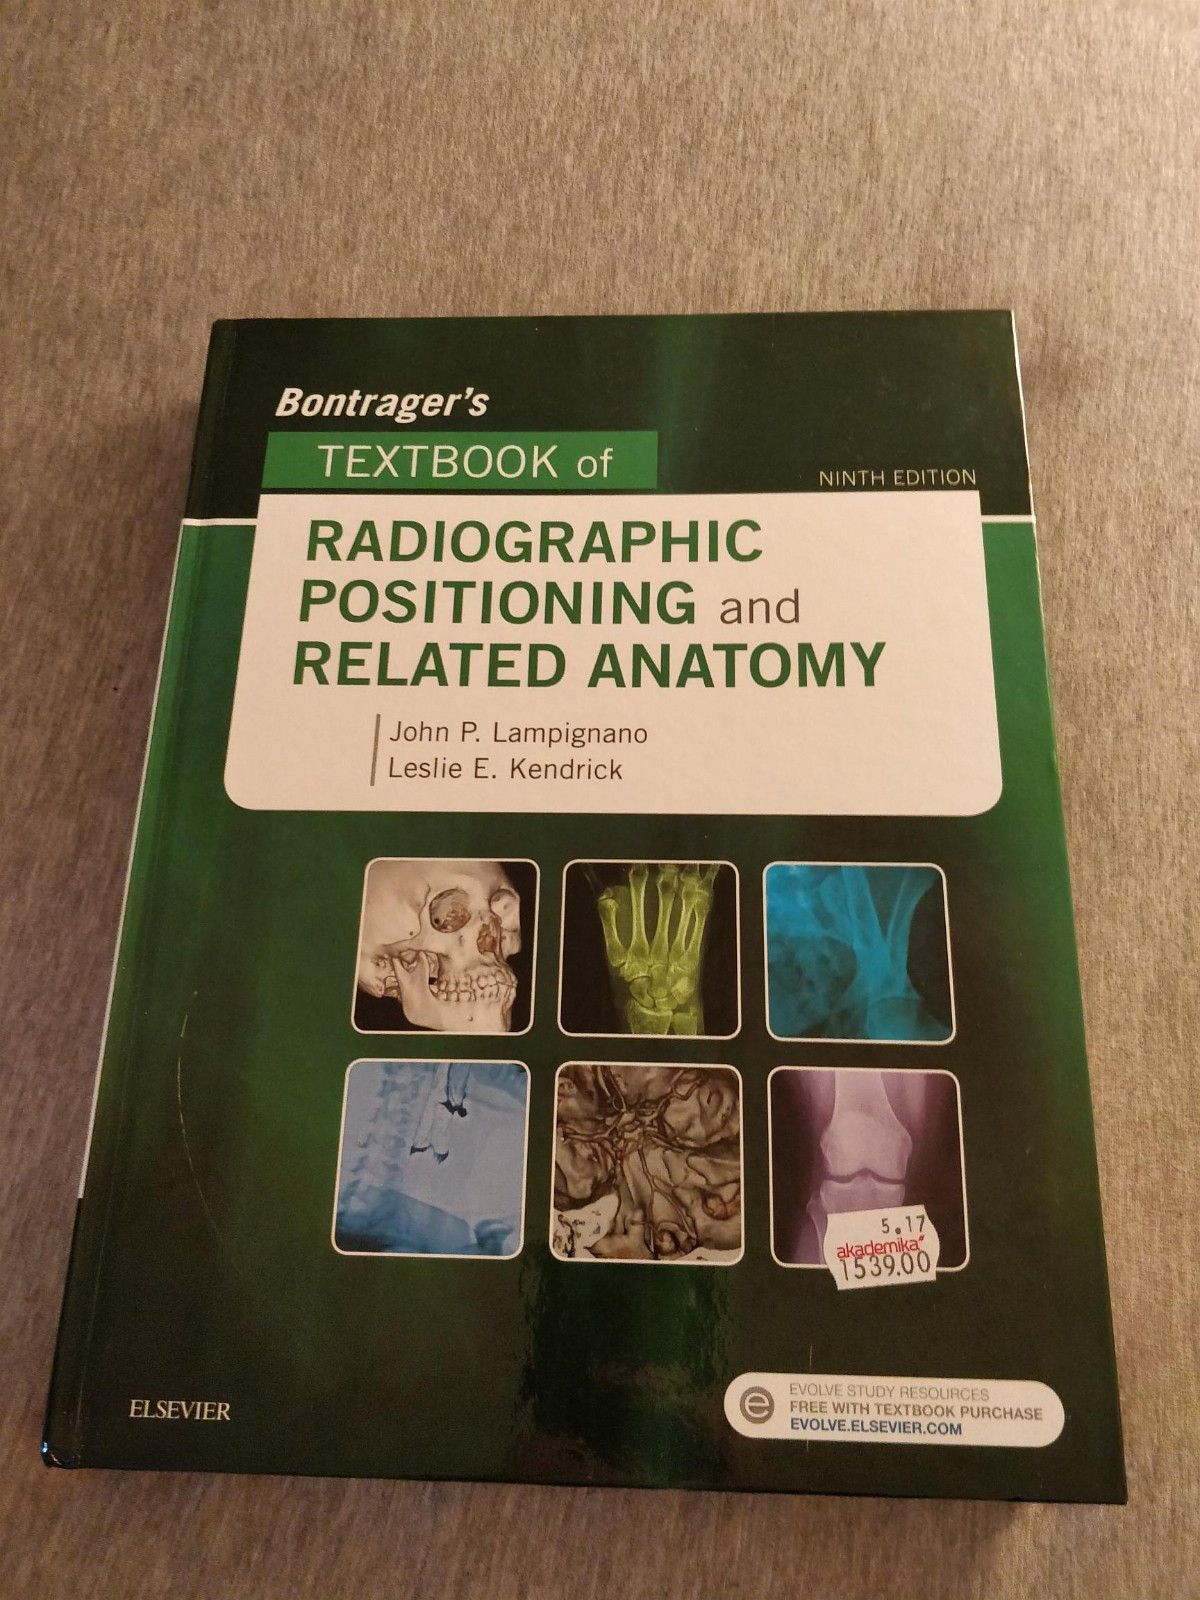 Radiographic positioning and related anatomy   FINN.no